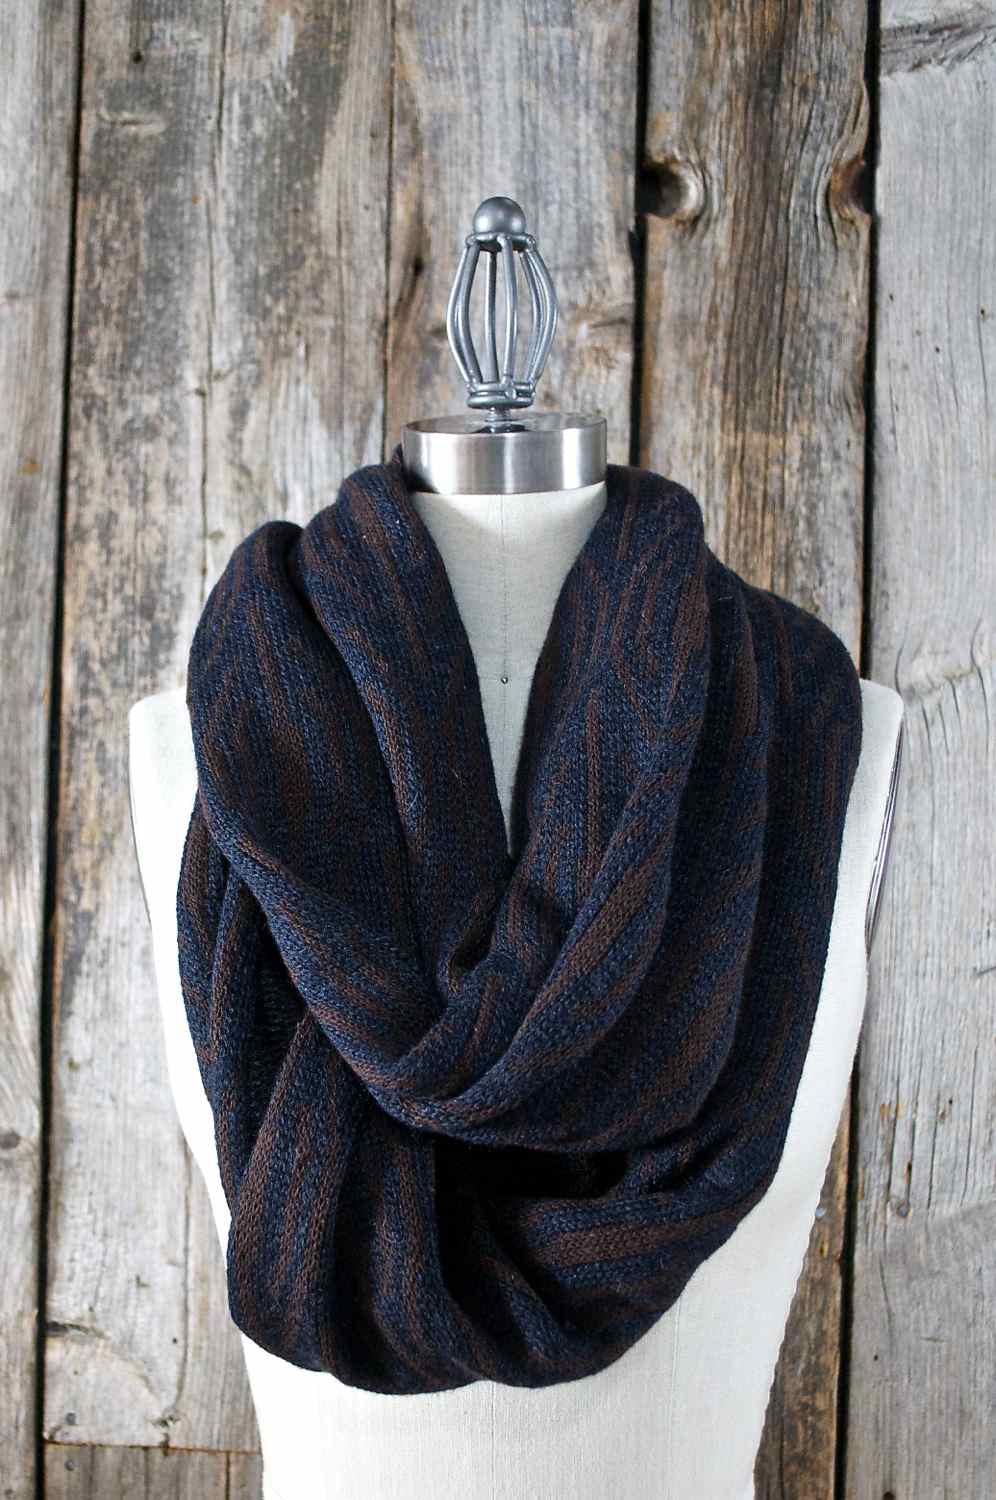 In the shop now - MIDNIGHT, another Infinity Scarf hand-loomed in the MORAY design using Peruvian Alpaca & Silk yarn.